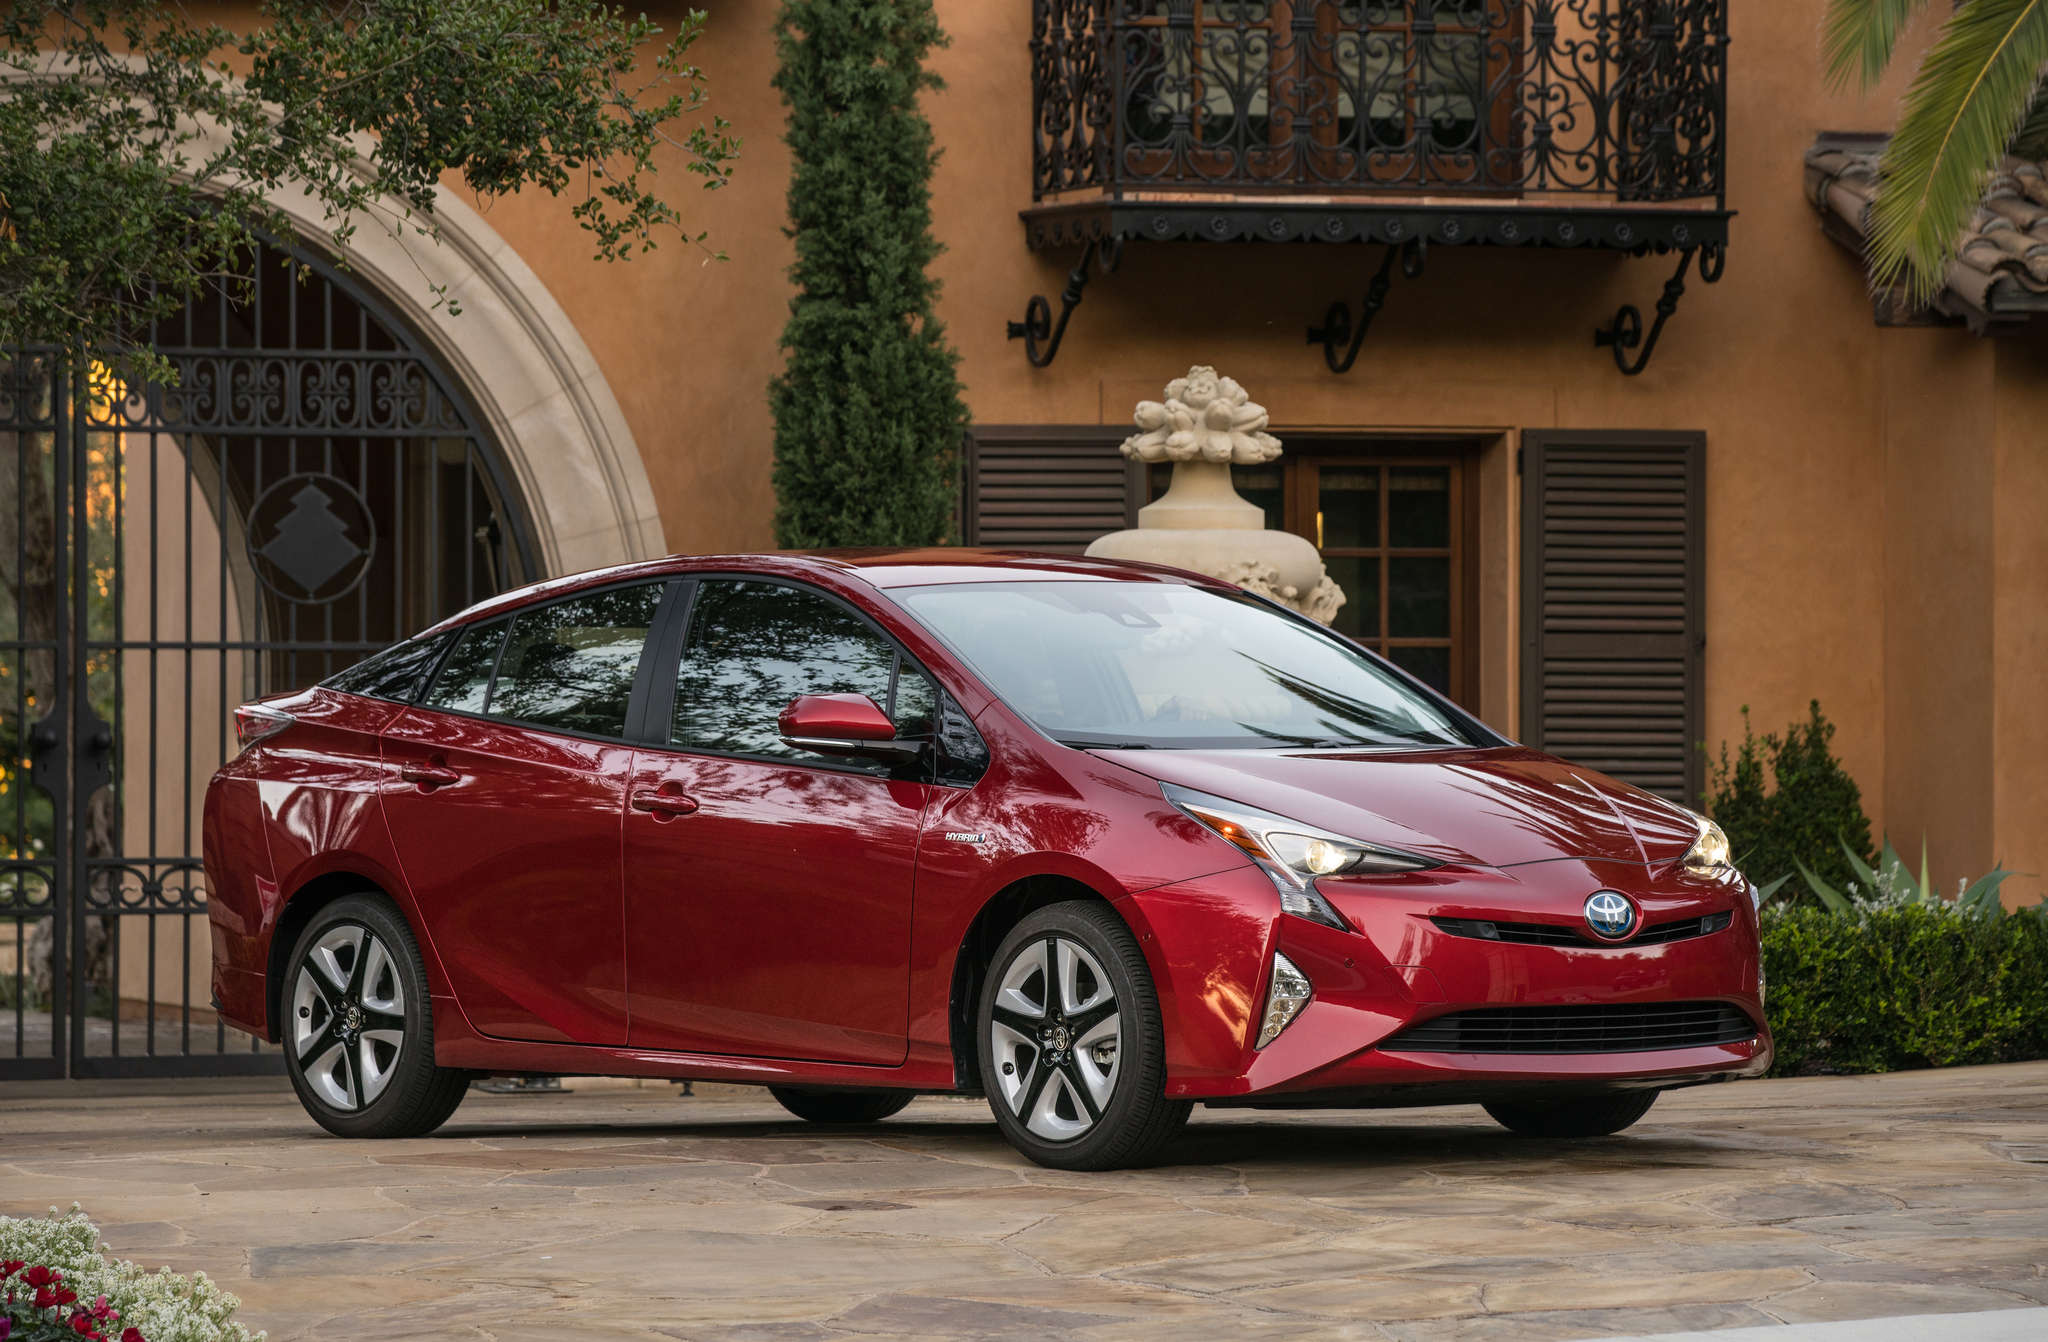 The 2016 Toyota Prius puts some new angles on the gas-electric hybrid vehicle.